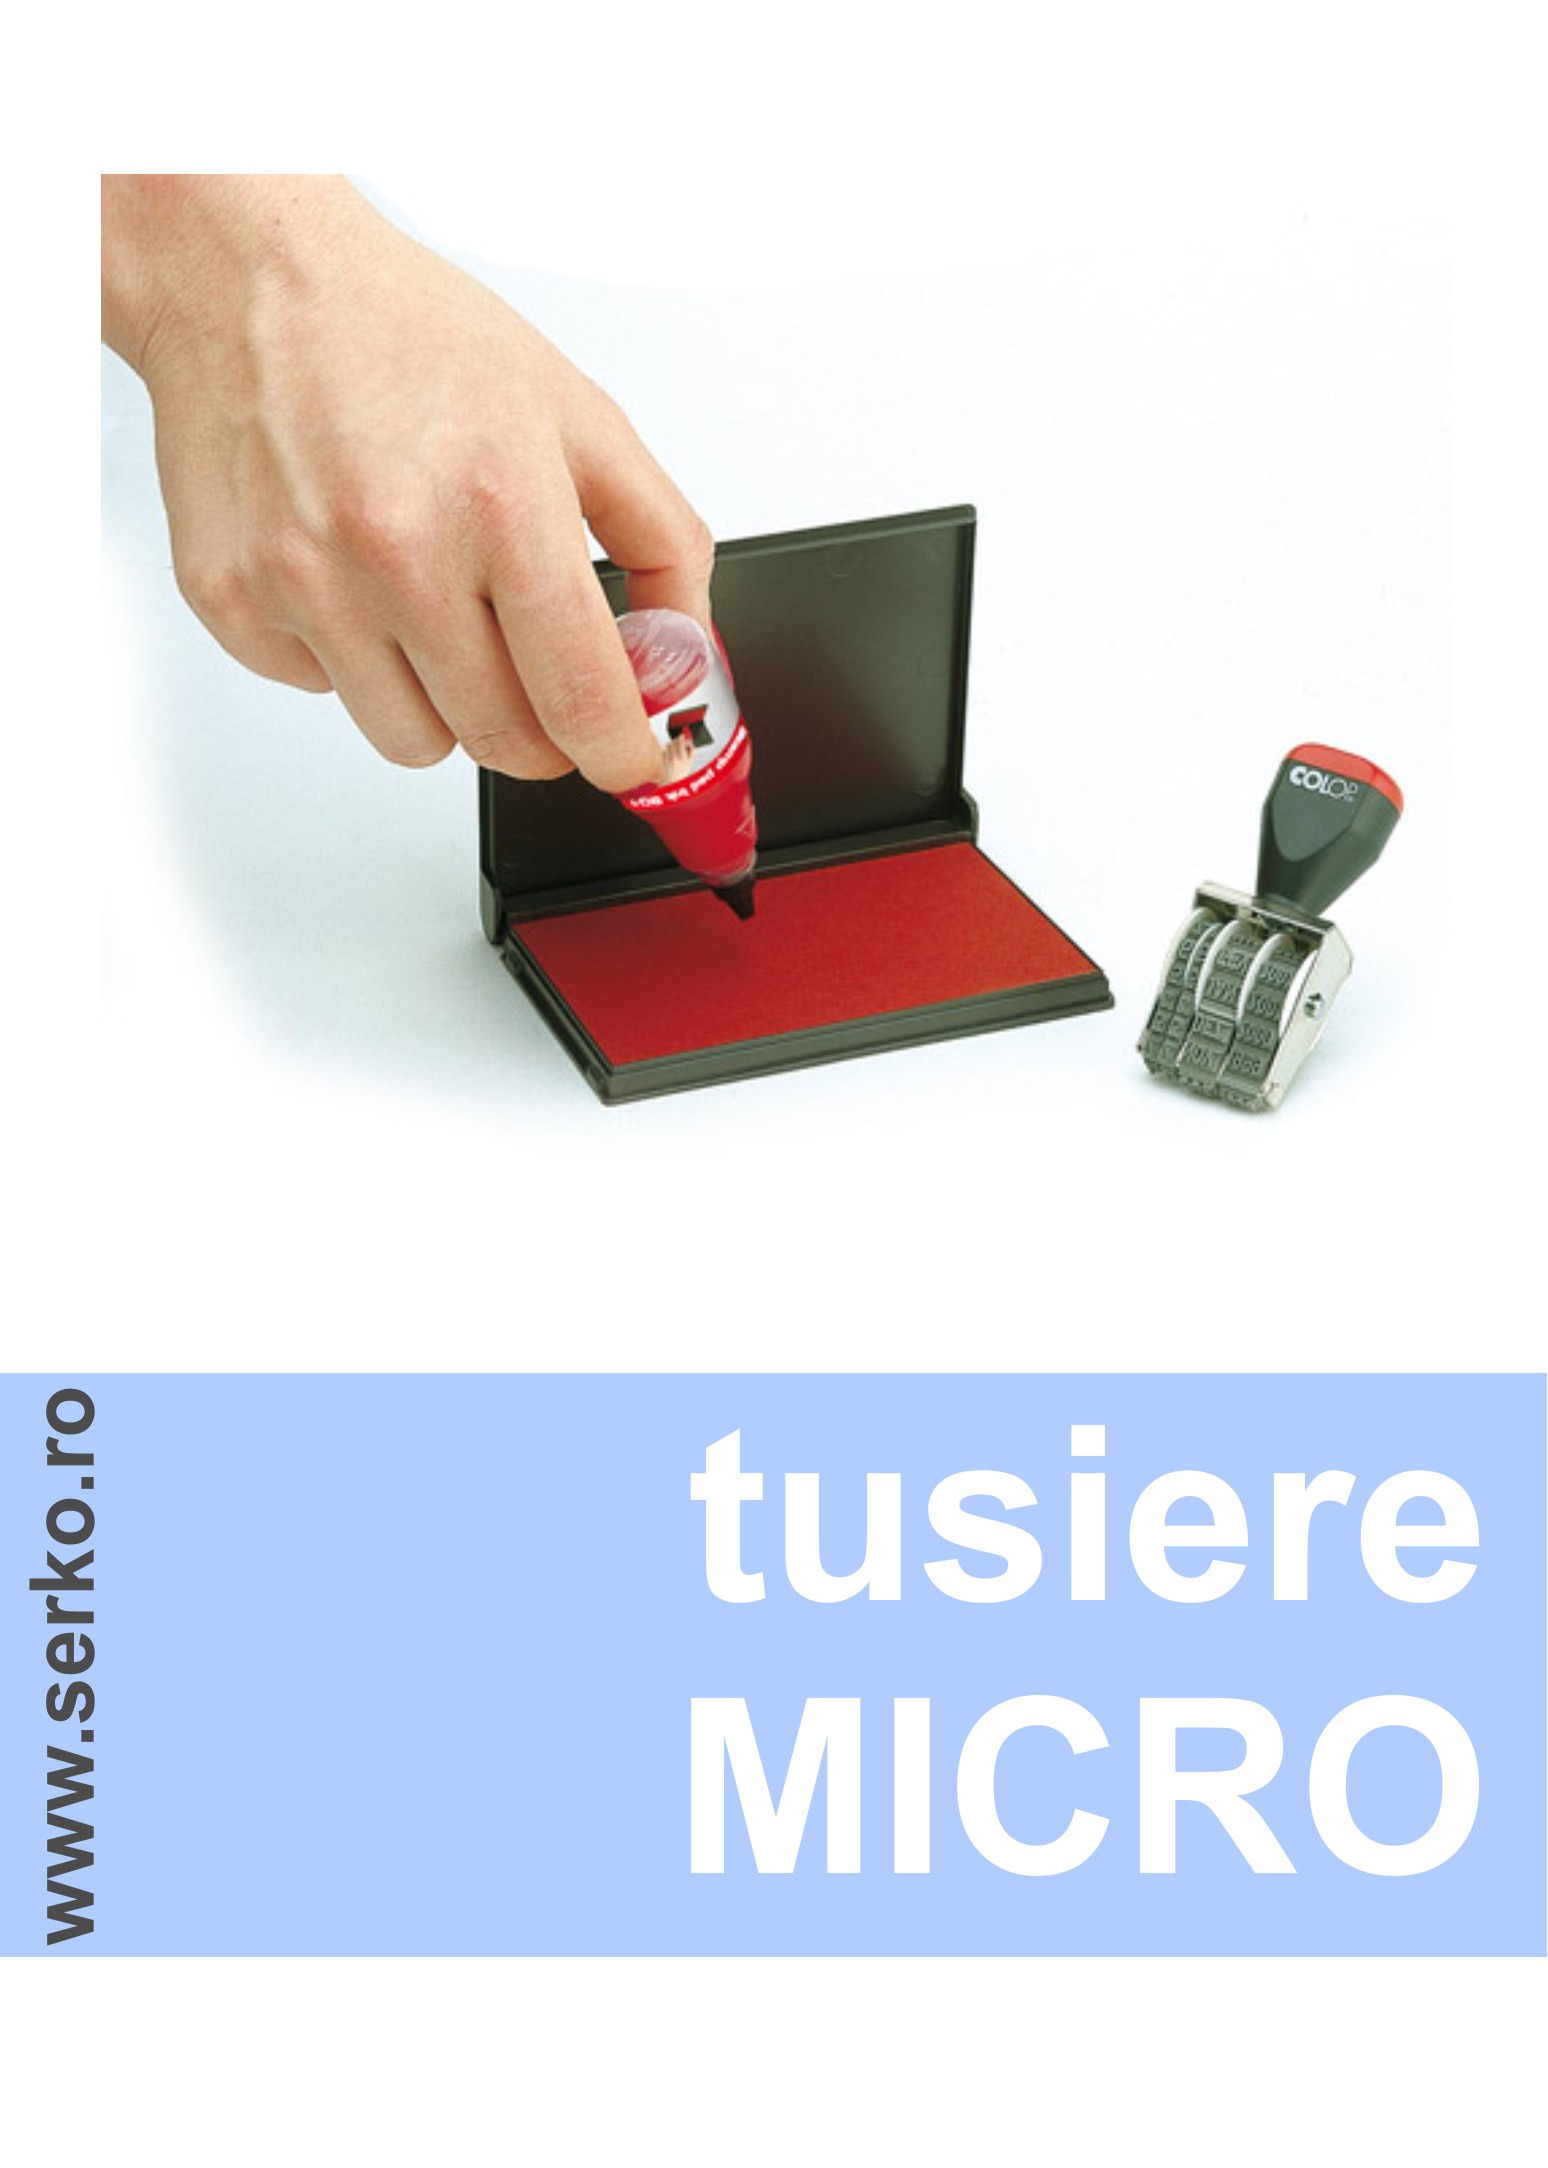 tusiere micro pt stampile lemn